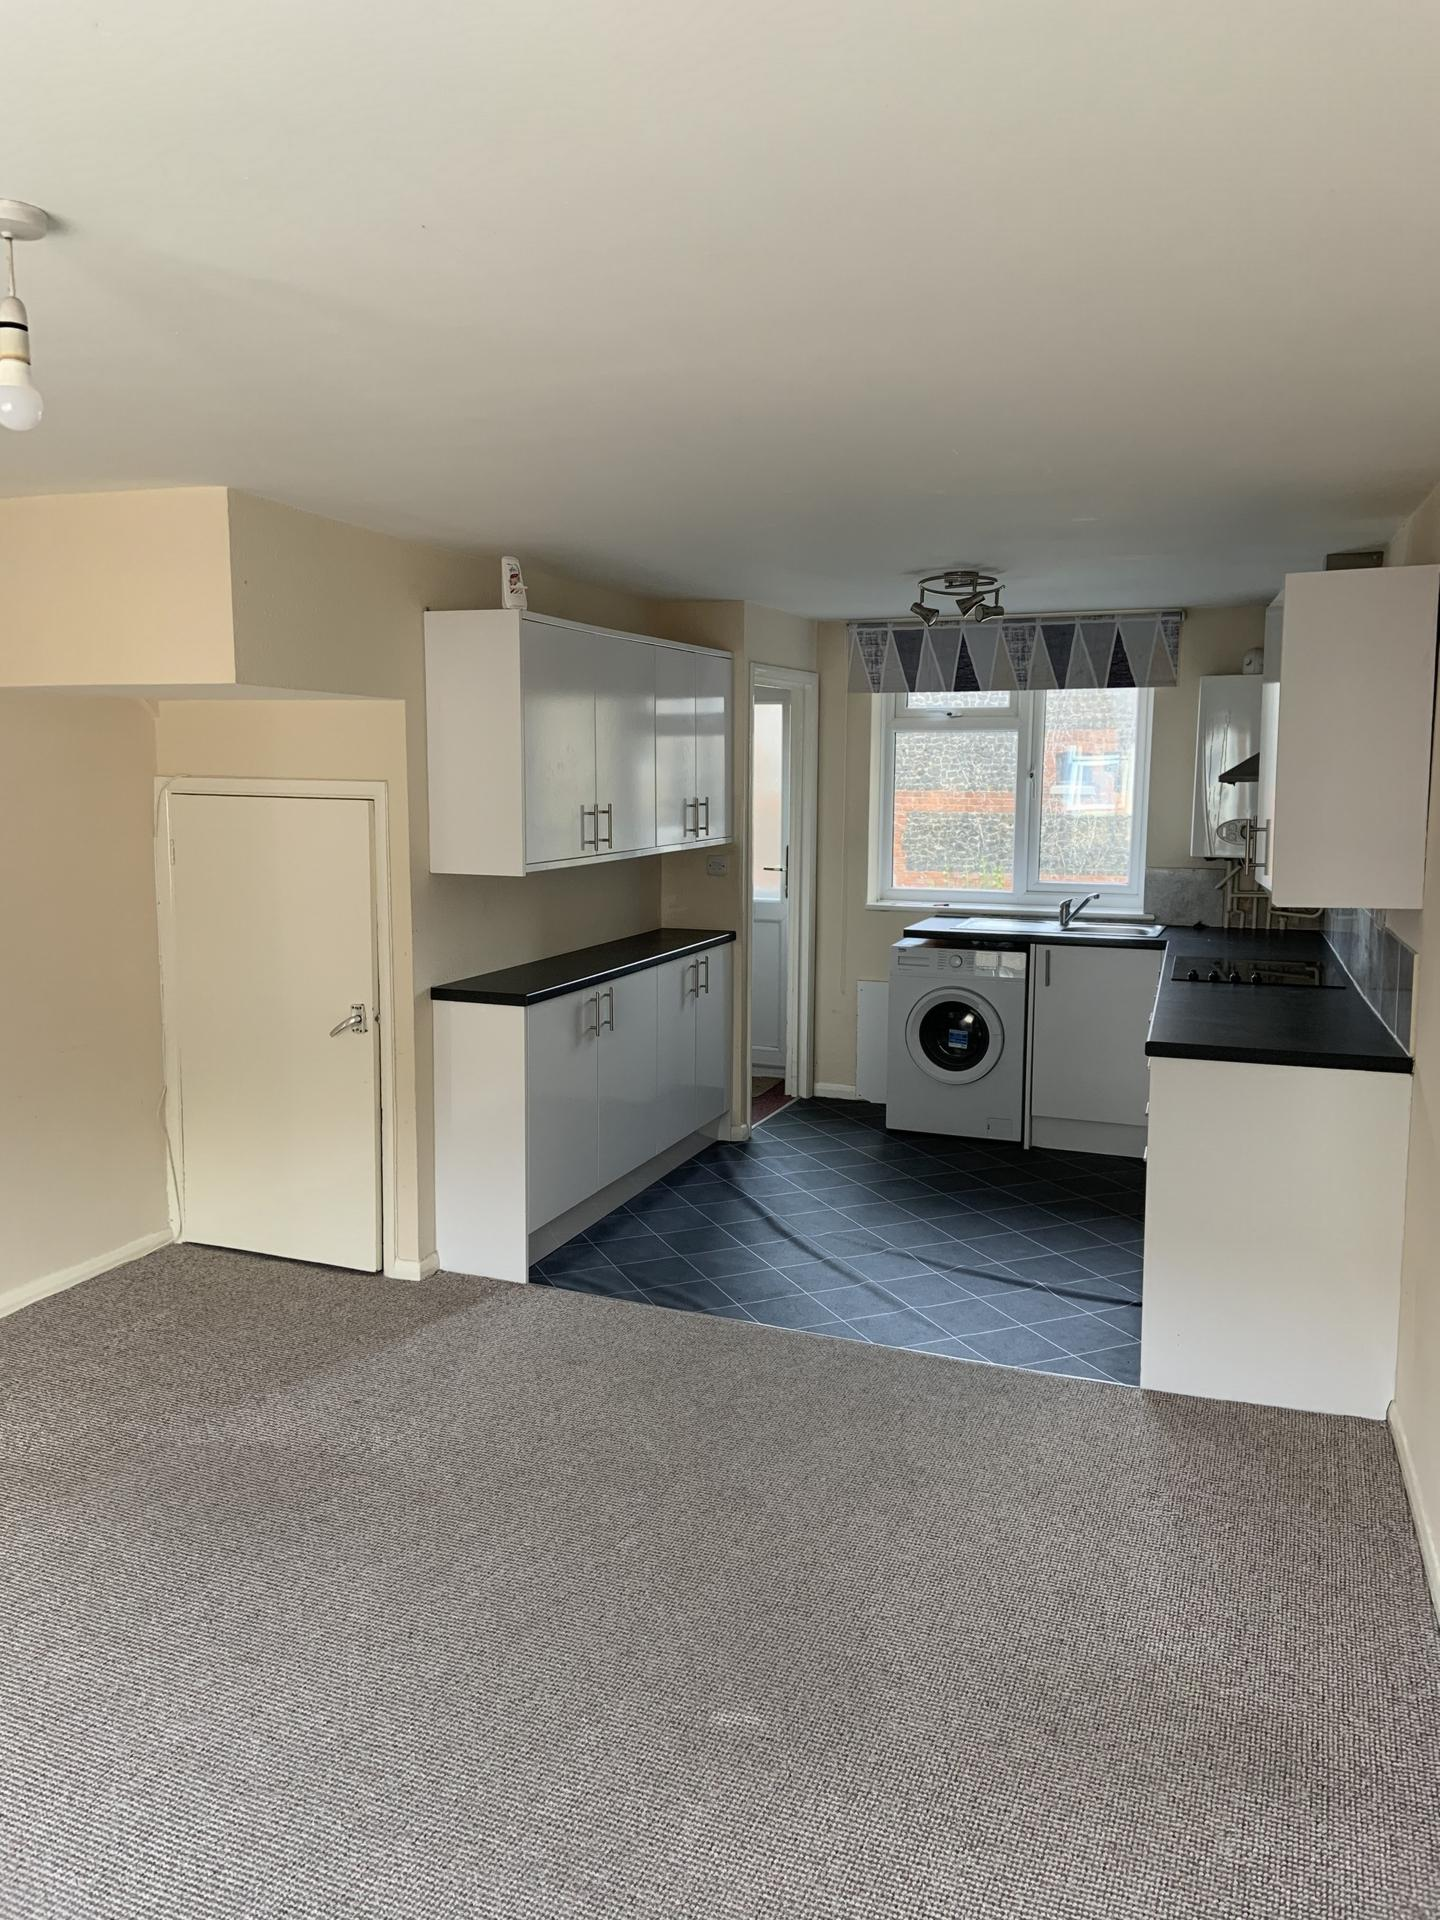 2 bed flat to rent in Station Road, CT7